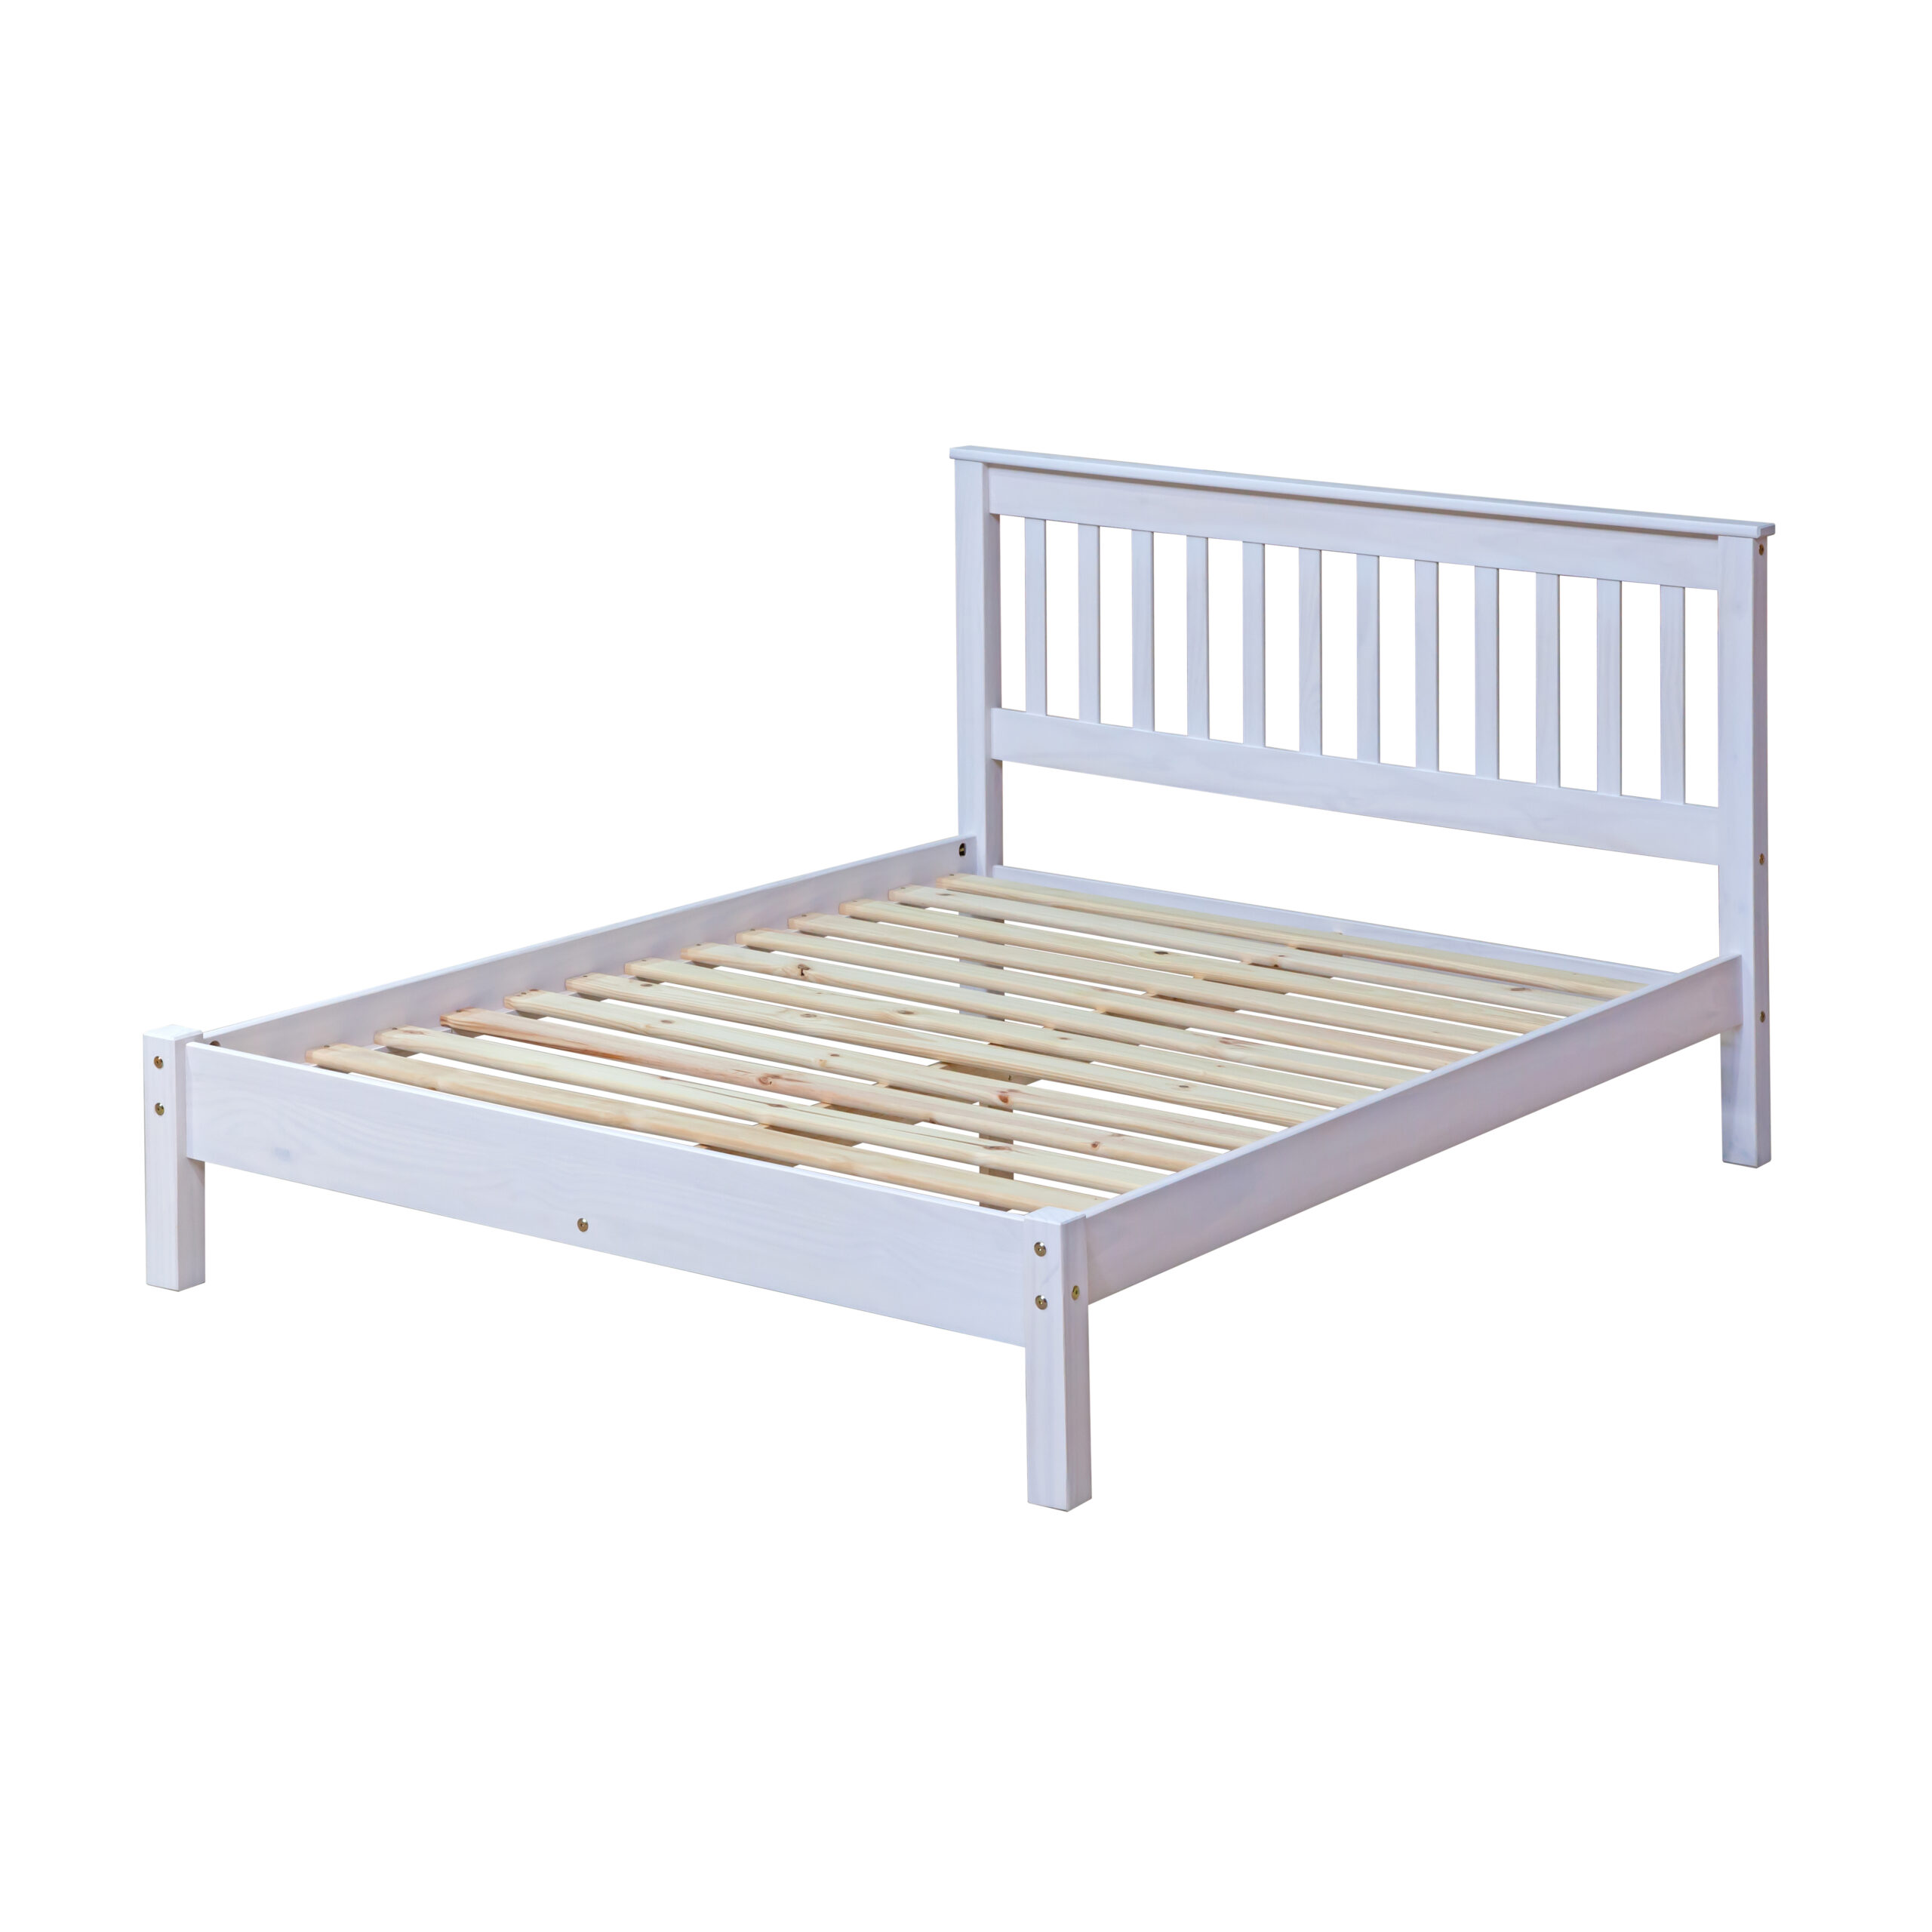 Shelton Pine 4'6 Low End Bedstead